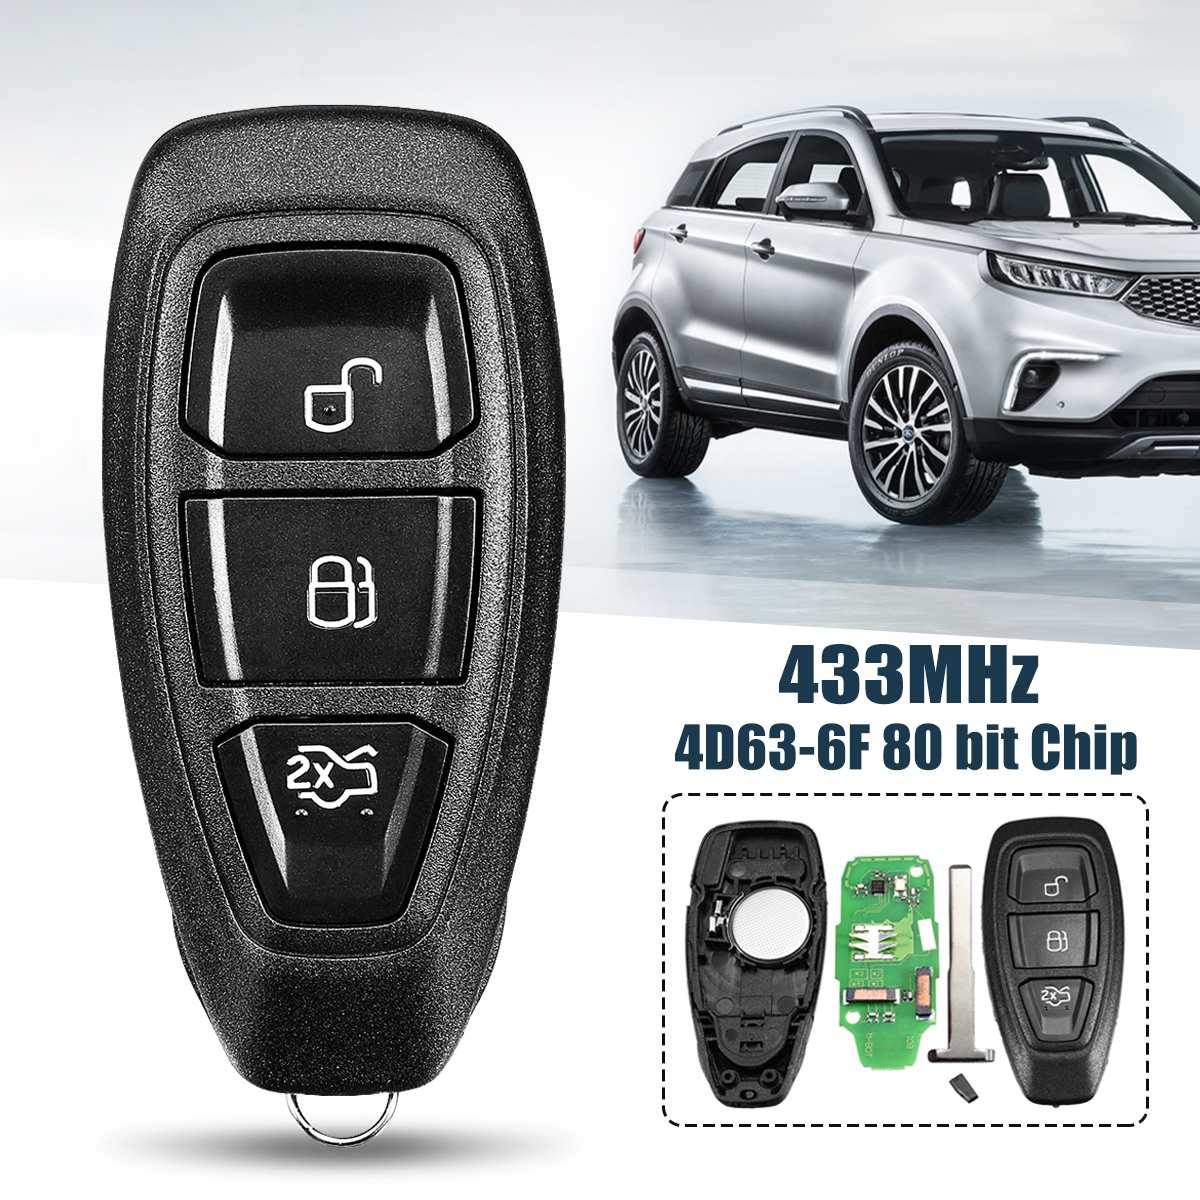 433Mhz 3 Button Smart Intelligent full <font><b>Remote</b></font> <font><b>Key</b></font> <font><b>for</b></font> <font><b>Ford</b></font> B-Max <font><b>for</b></font> C-Max <font><b>for</b></font> <font><b>Focus</b></font> <font><b>for</b></font> Galaxy KR55WK48801 4D83 80bit image